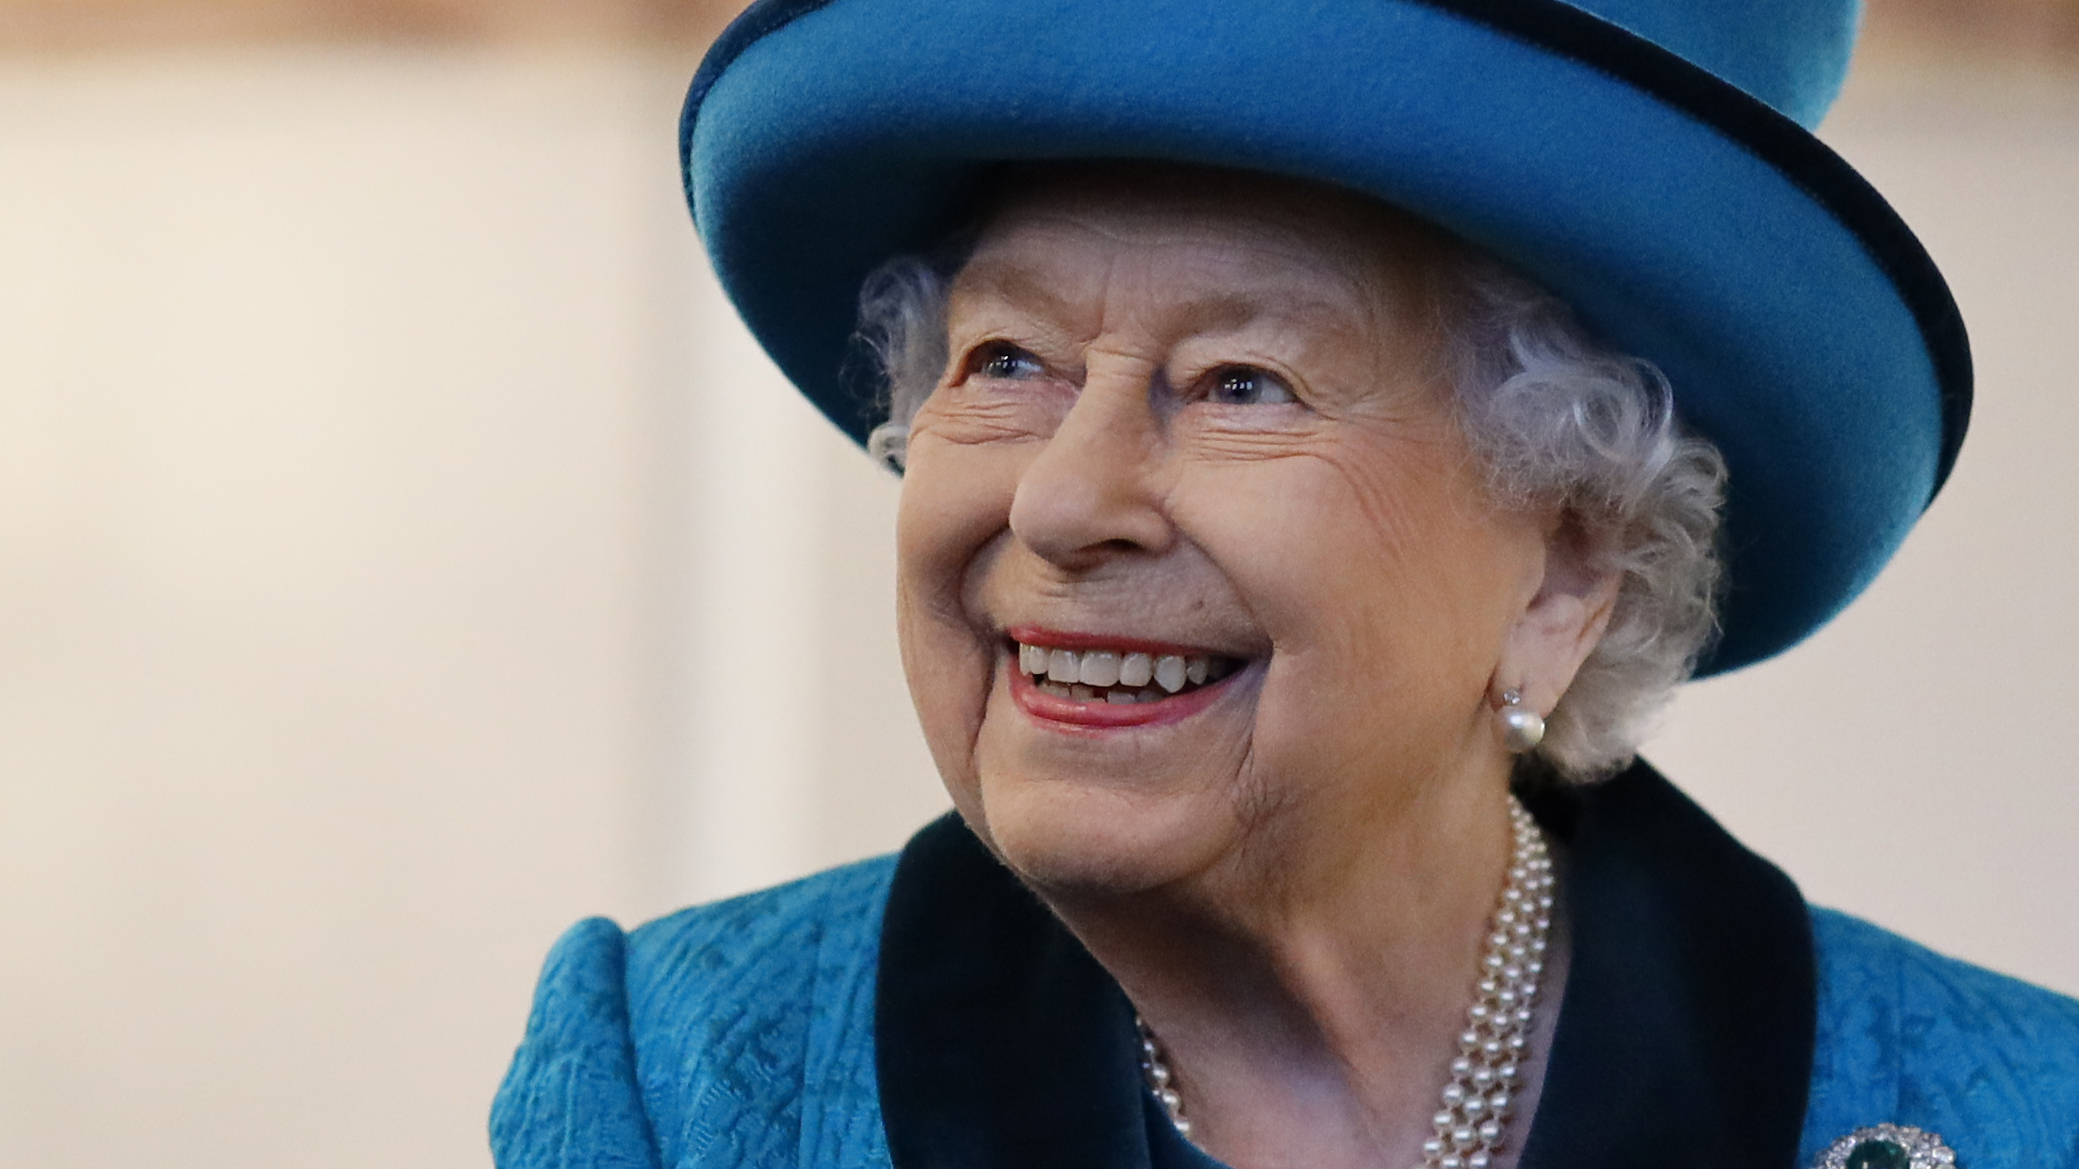 Queen Elizabeth II: Her Majesty's contribution to classical music